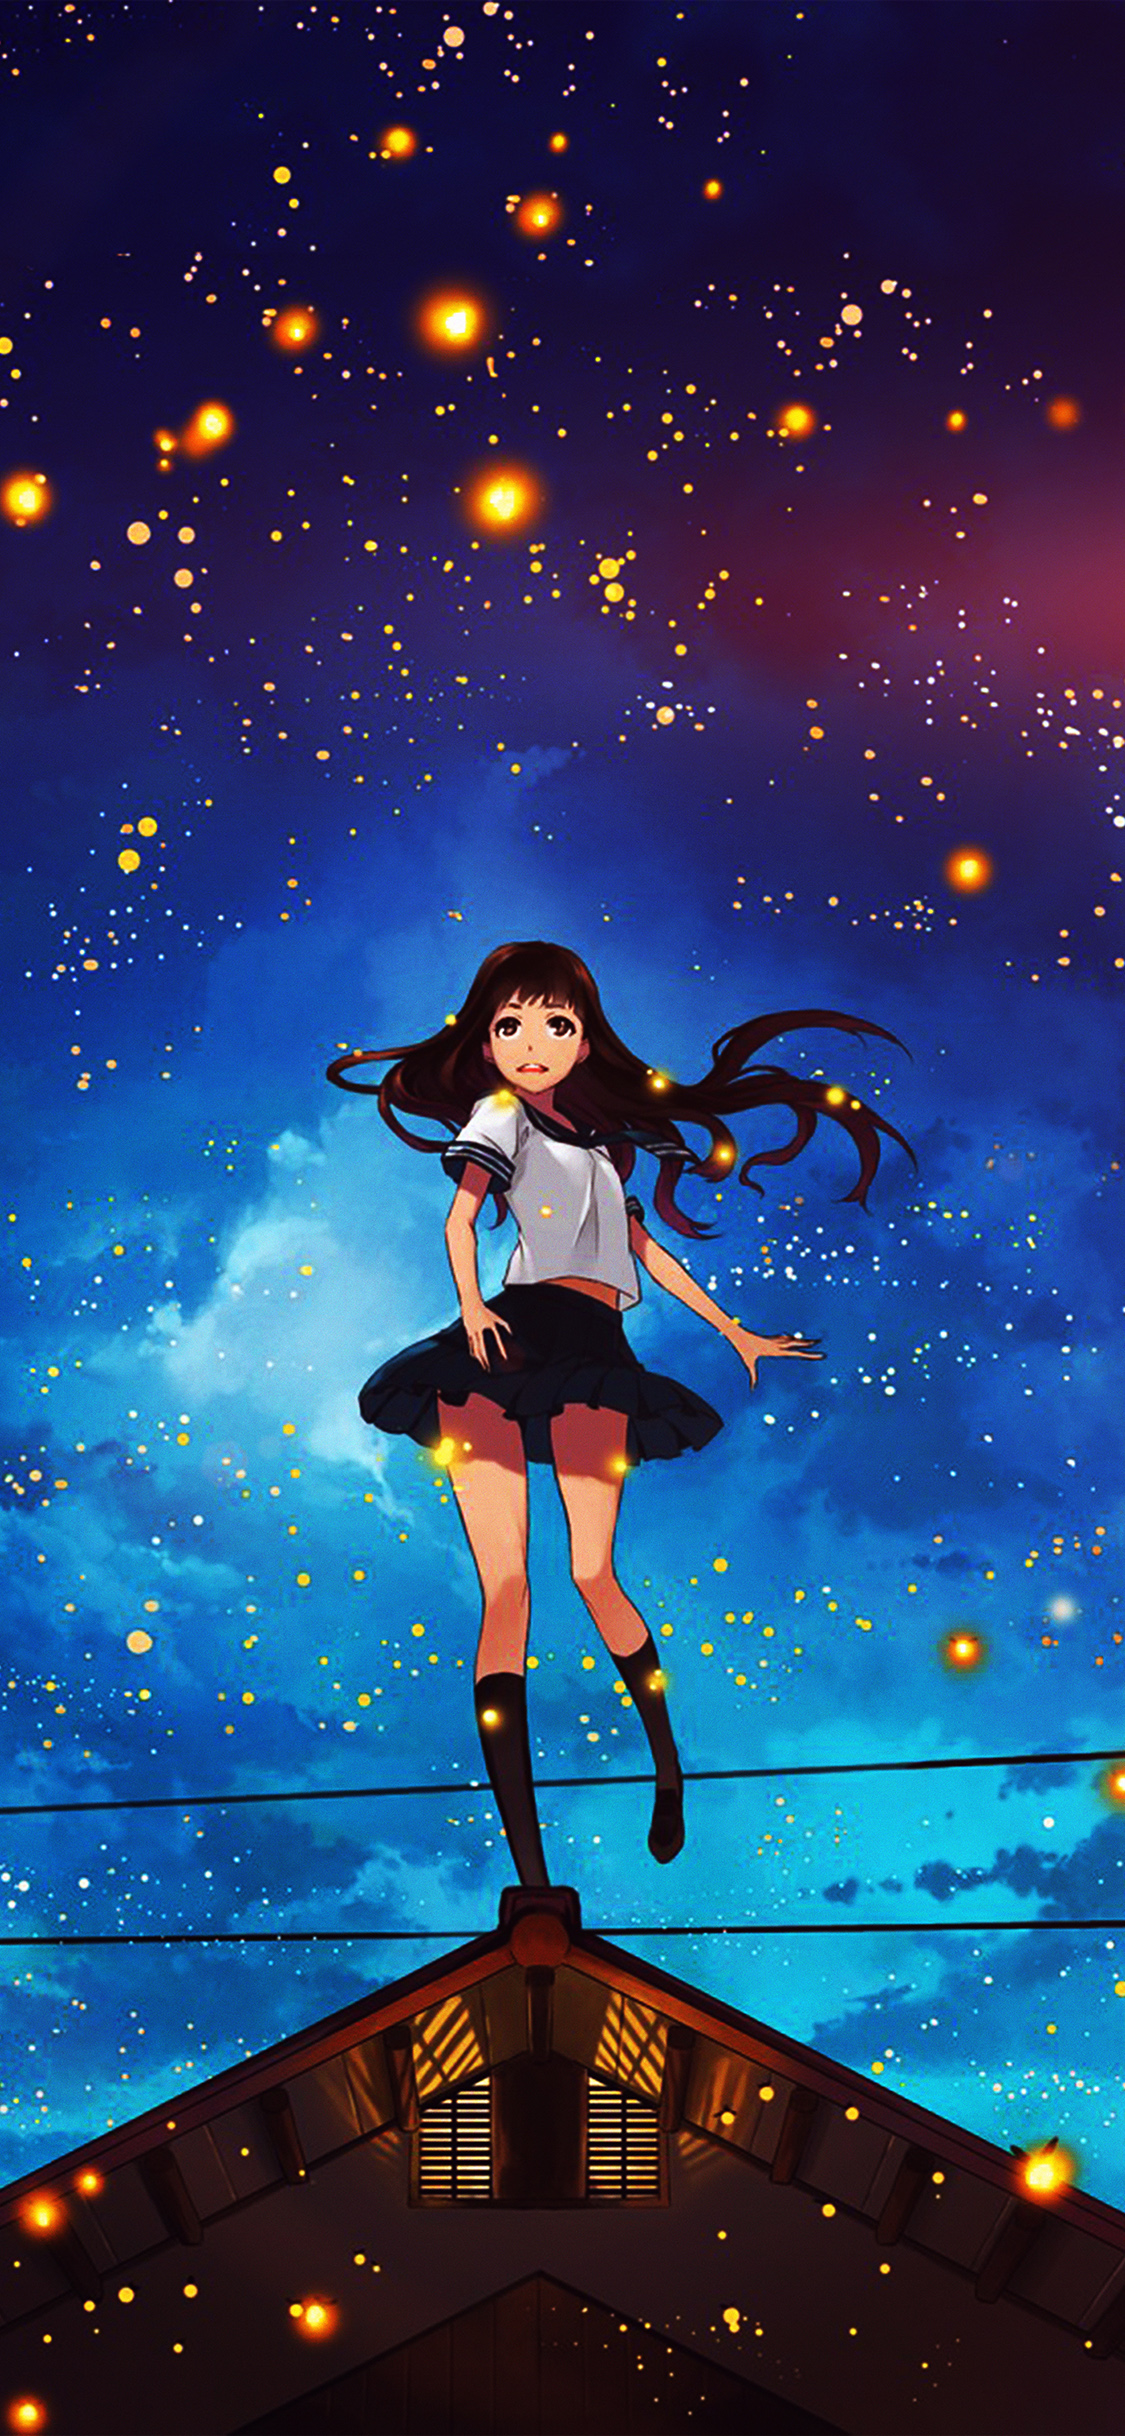 Girl Anime Star Space Night Iphone X Wallpapers Free Download